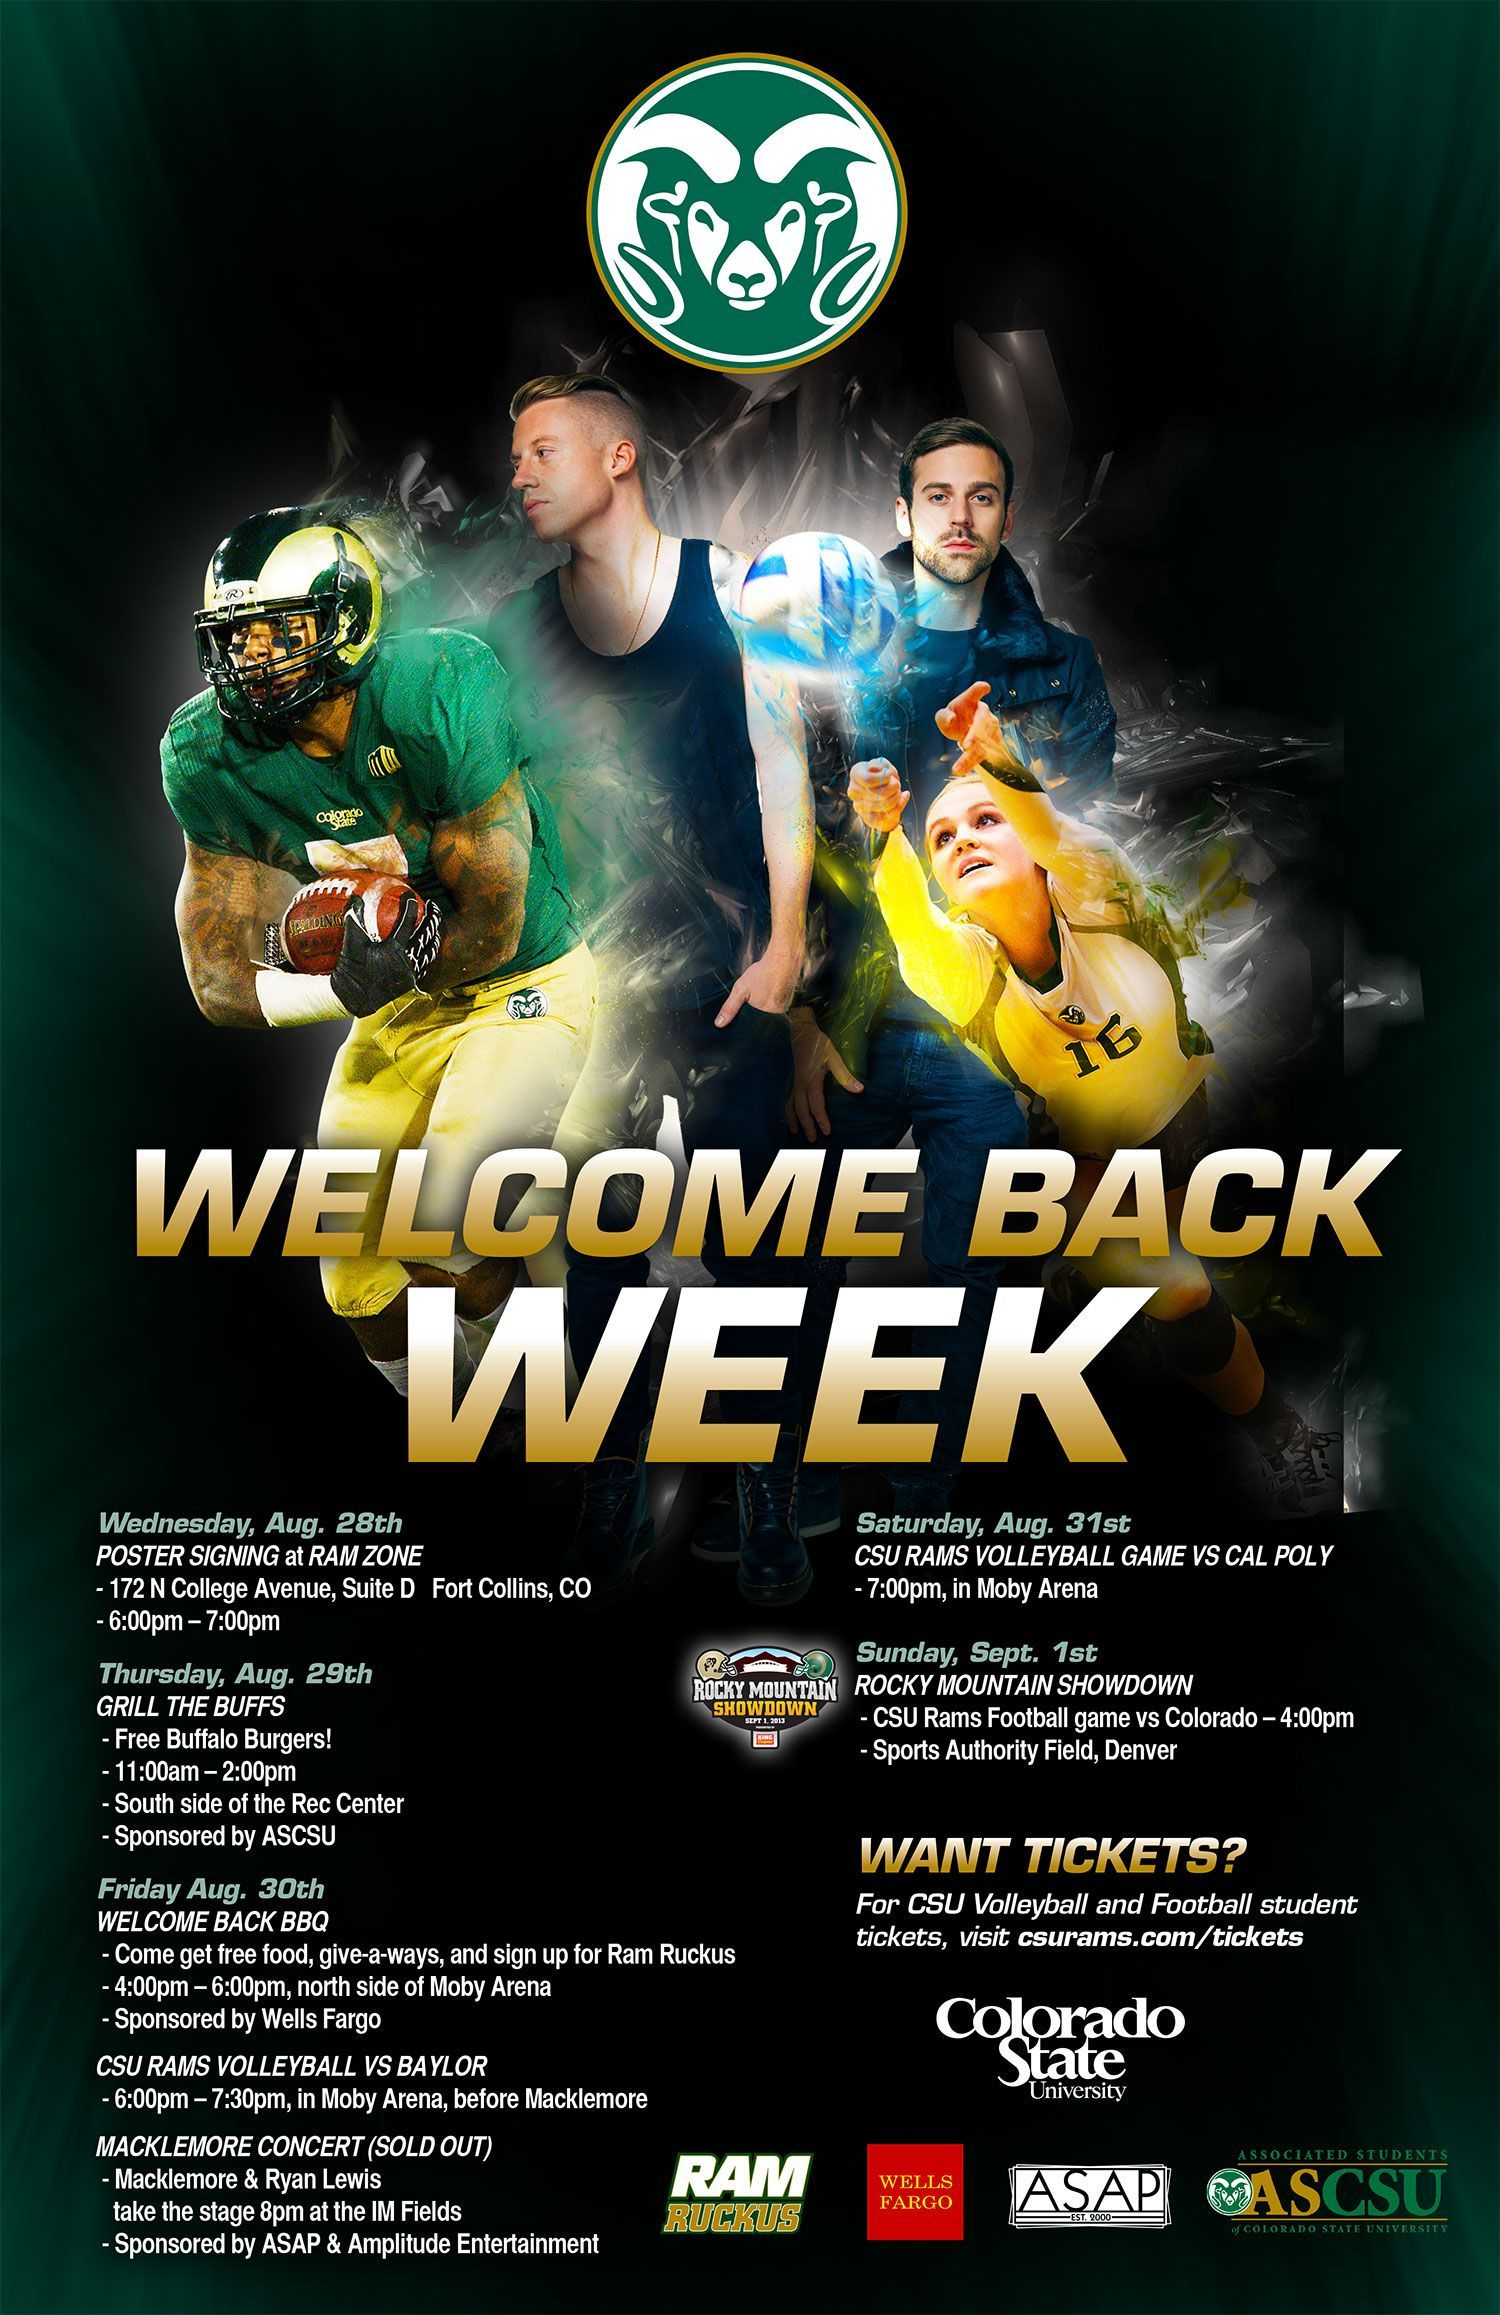 Welcome Back Rams We Have An Amazing Welcome Back Week For You Including Grill The Buffs The Welcome Back Bbq Weekend Fun Volleyball Games Sports Authority